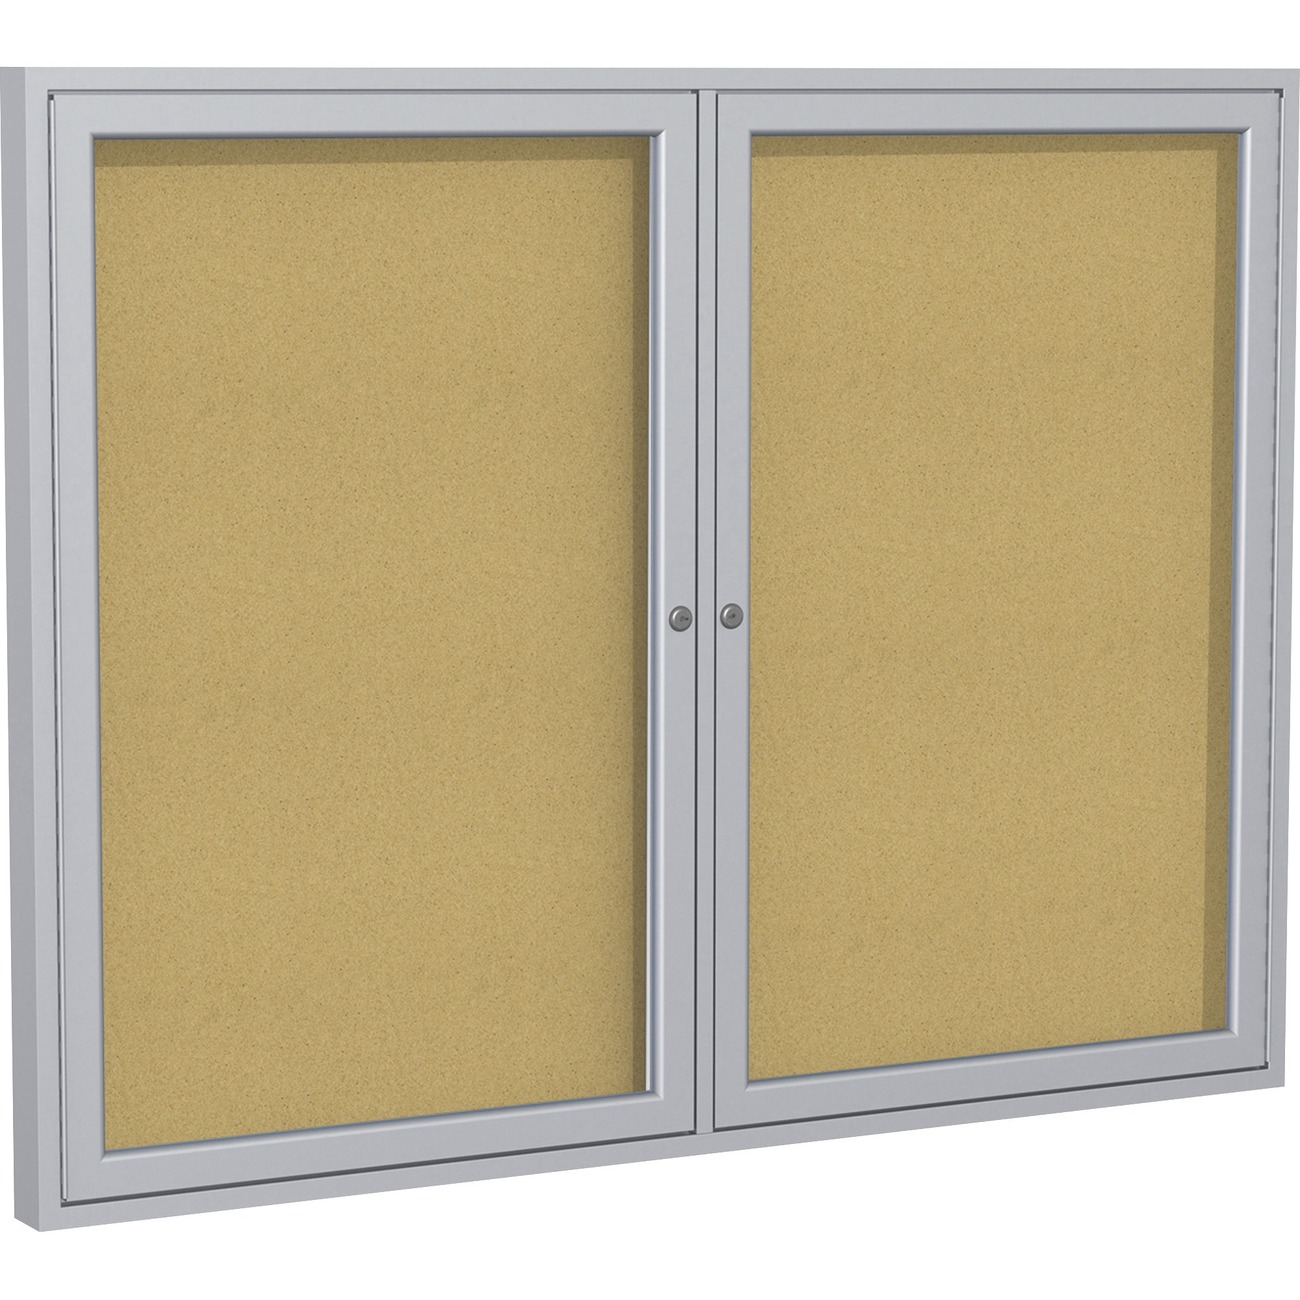 cork boards for office. Enclosed Cork Bulletin Board Features Two Doors And Anodized Aluminum In A Satin Finish. The Self-healing Natural Surface Will Hold Up Under Most Boards For Office